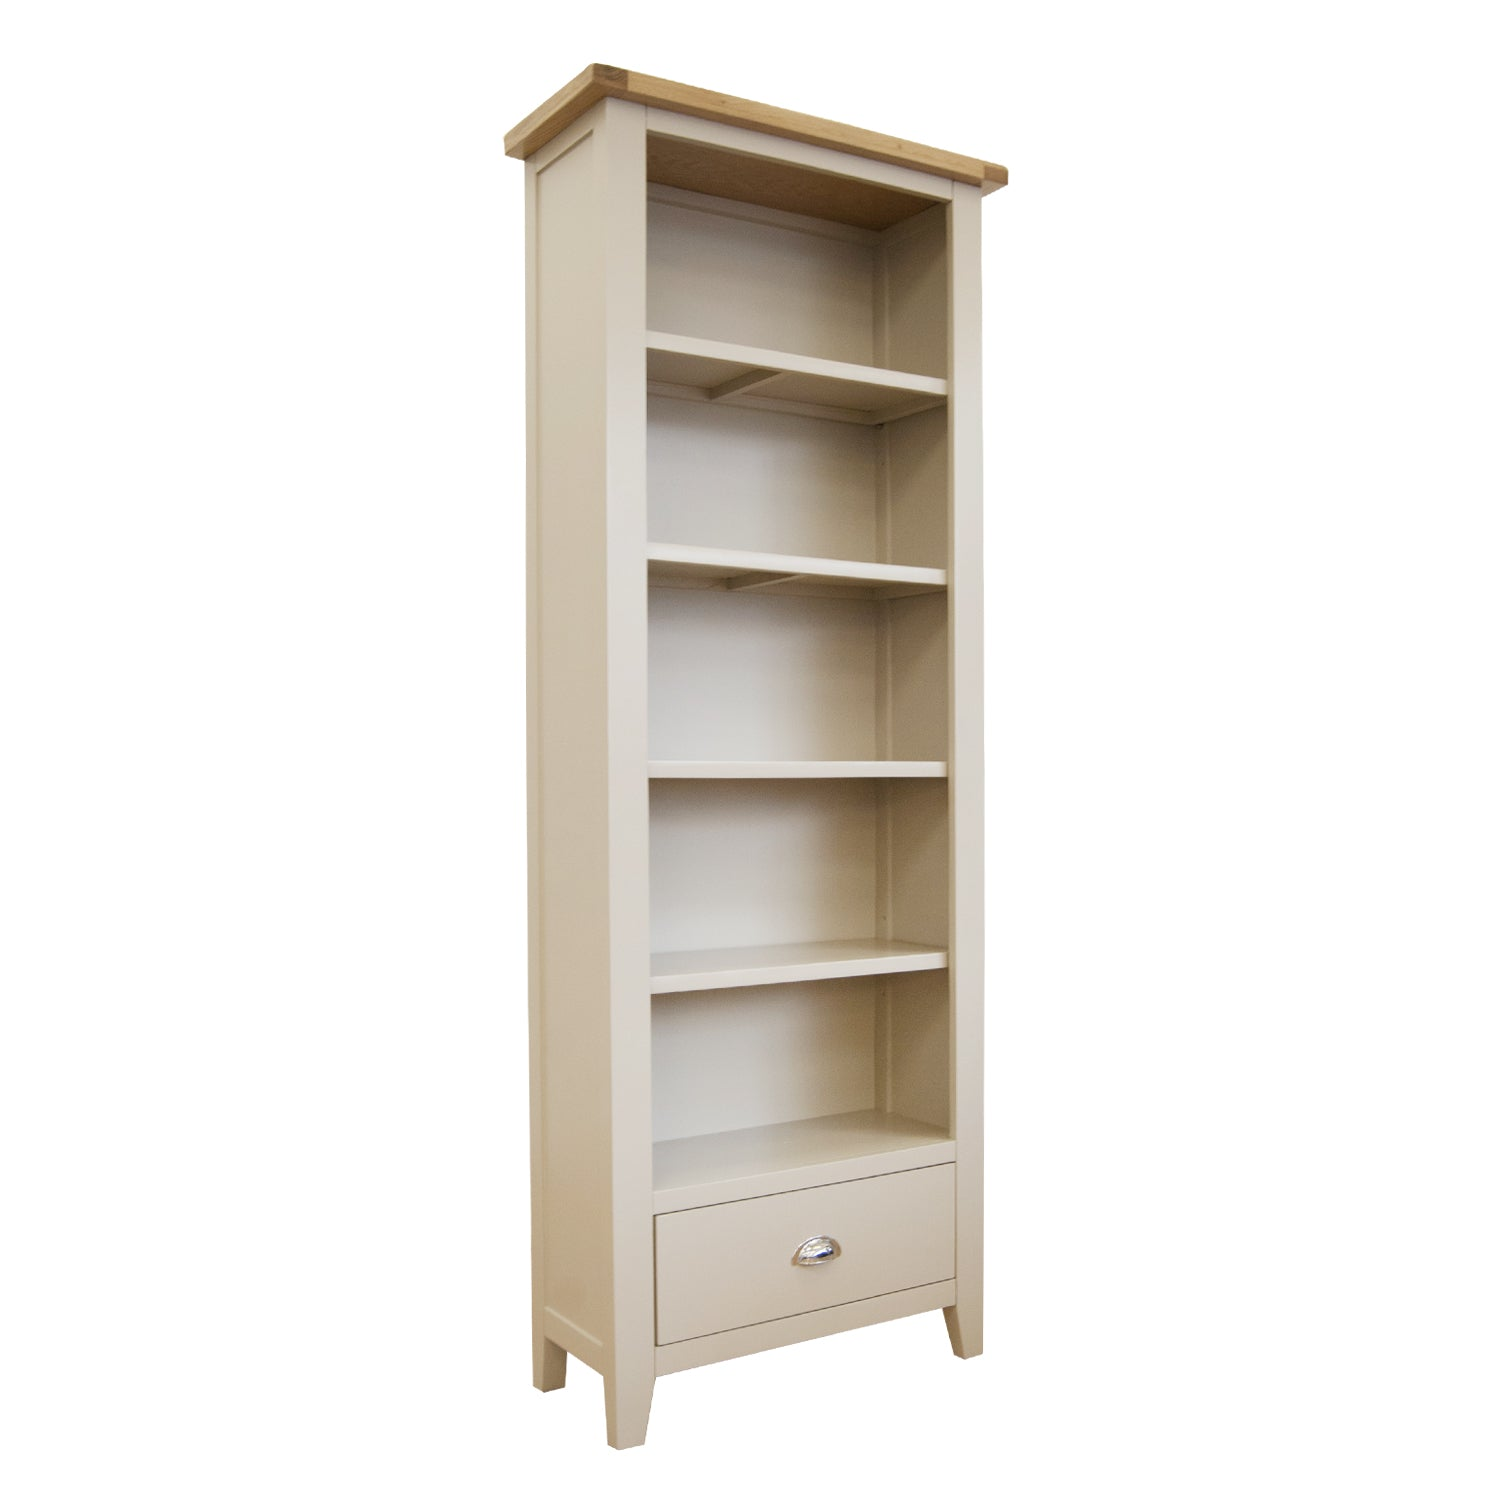 drawer bookcase angel stores narrow shelves home leader oak furniture to craft image bookcases go white tall storage